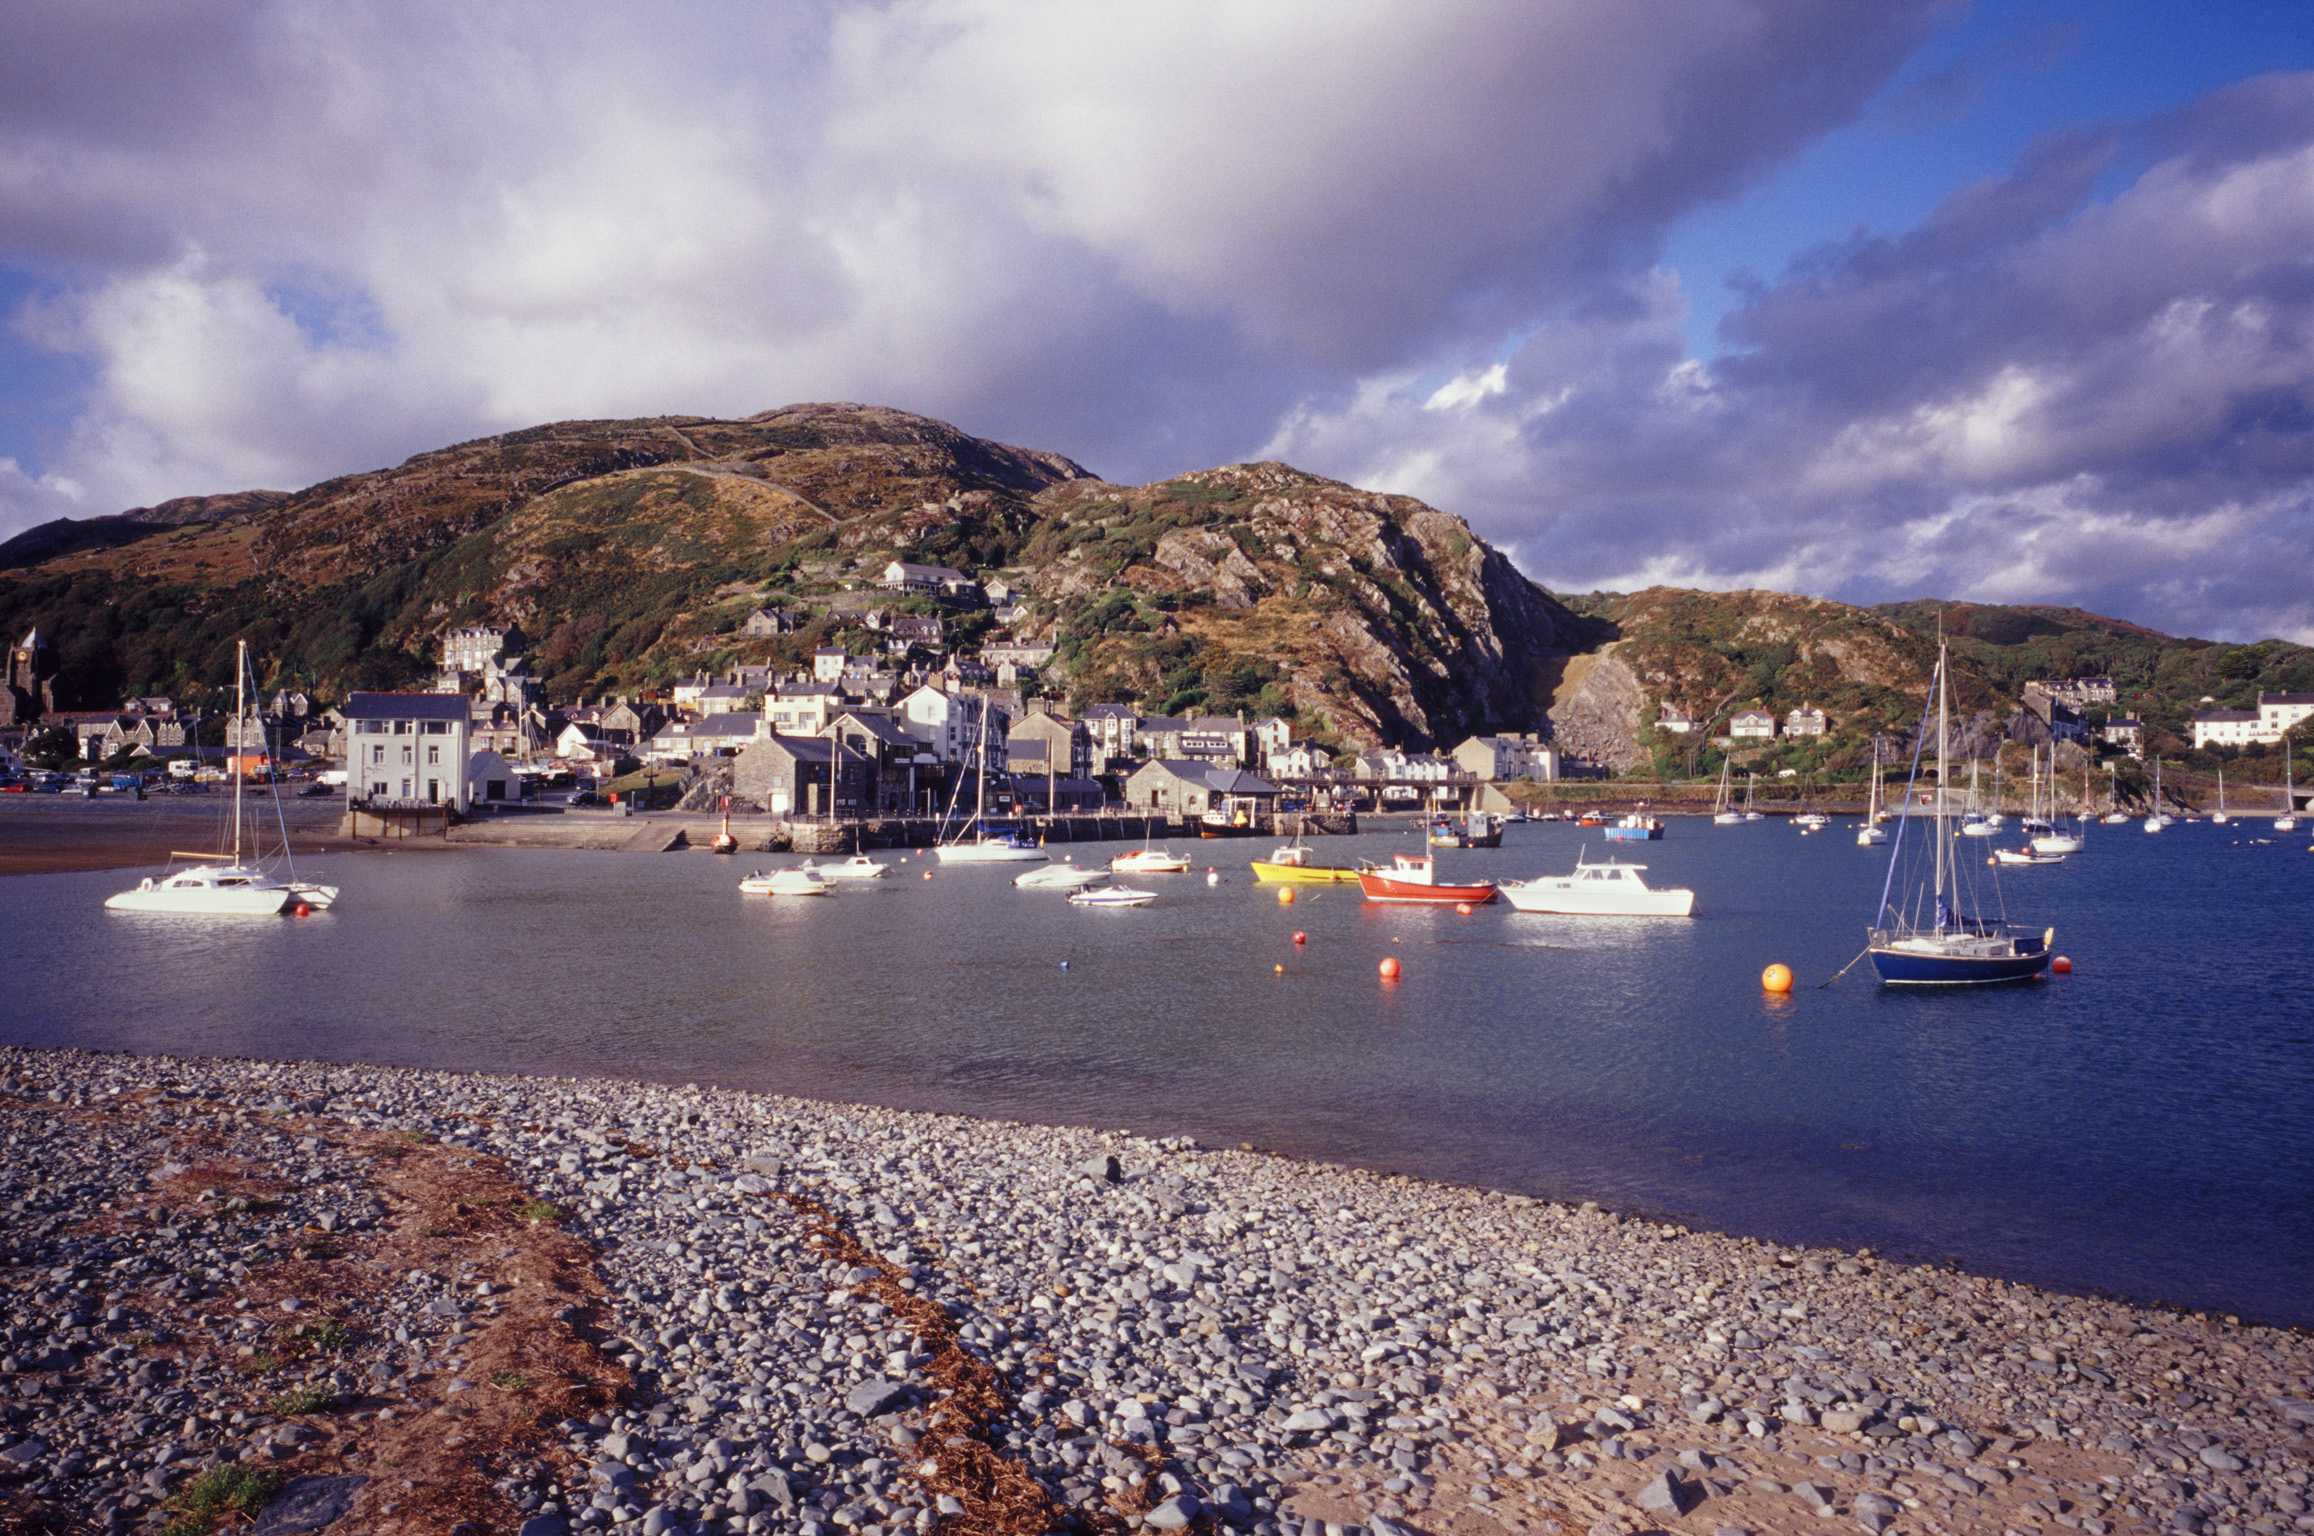 Scenic view of Barmouth, Gwynedd, Wales showing the waterfront with boats moored in the sheltered harbour of the bay